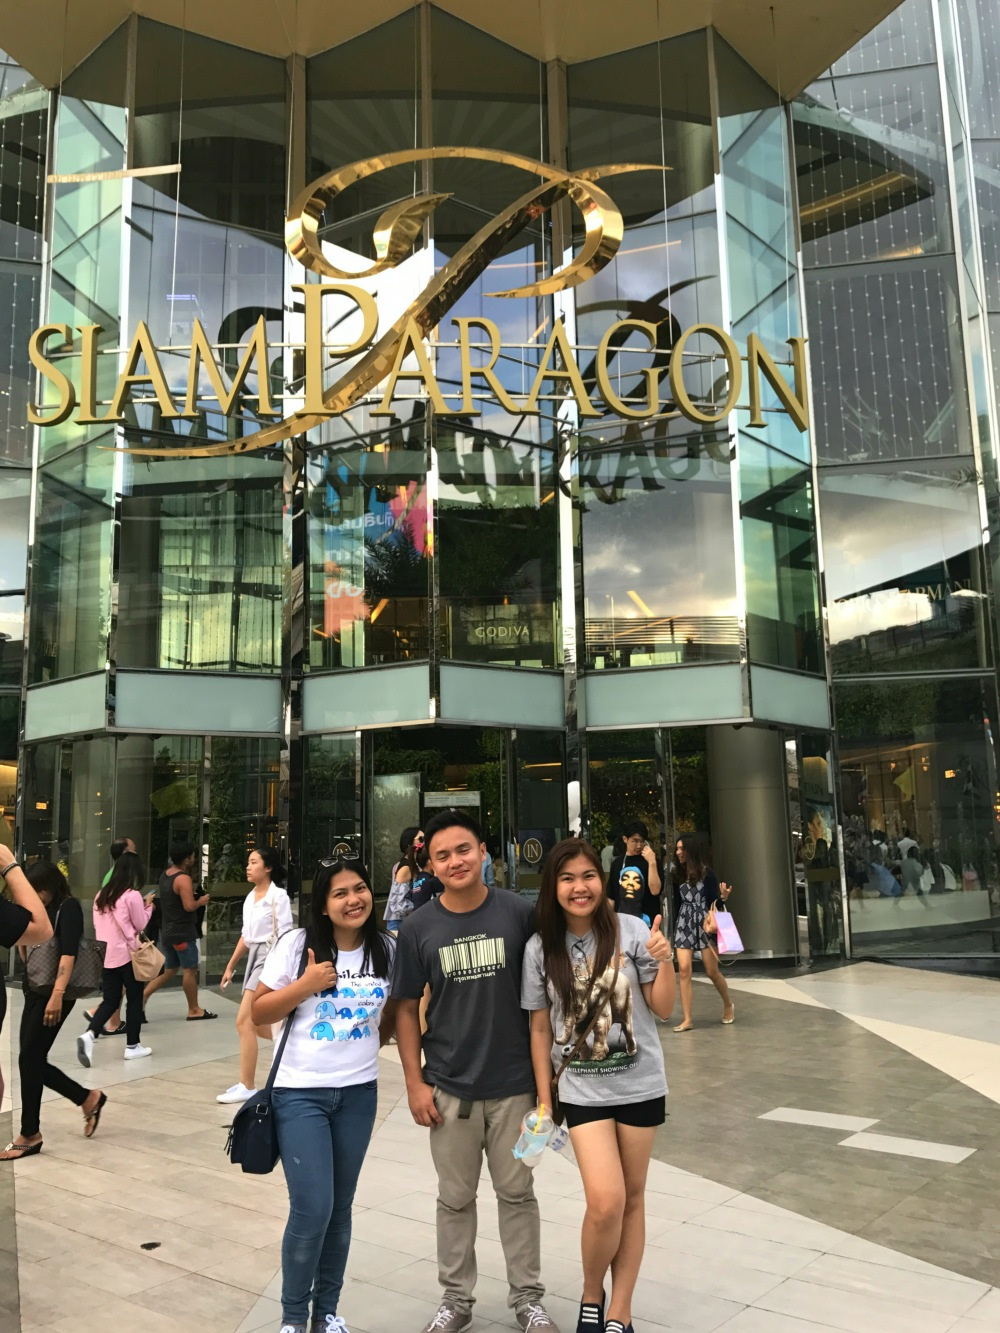 SiamParagon